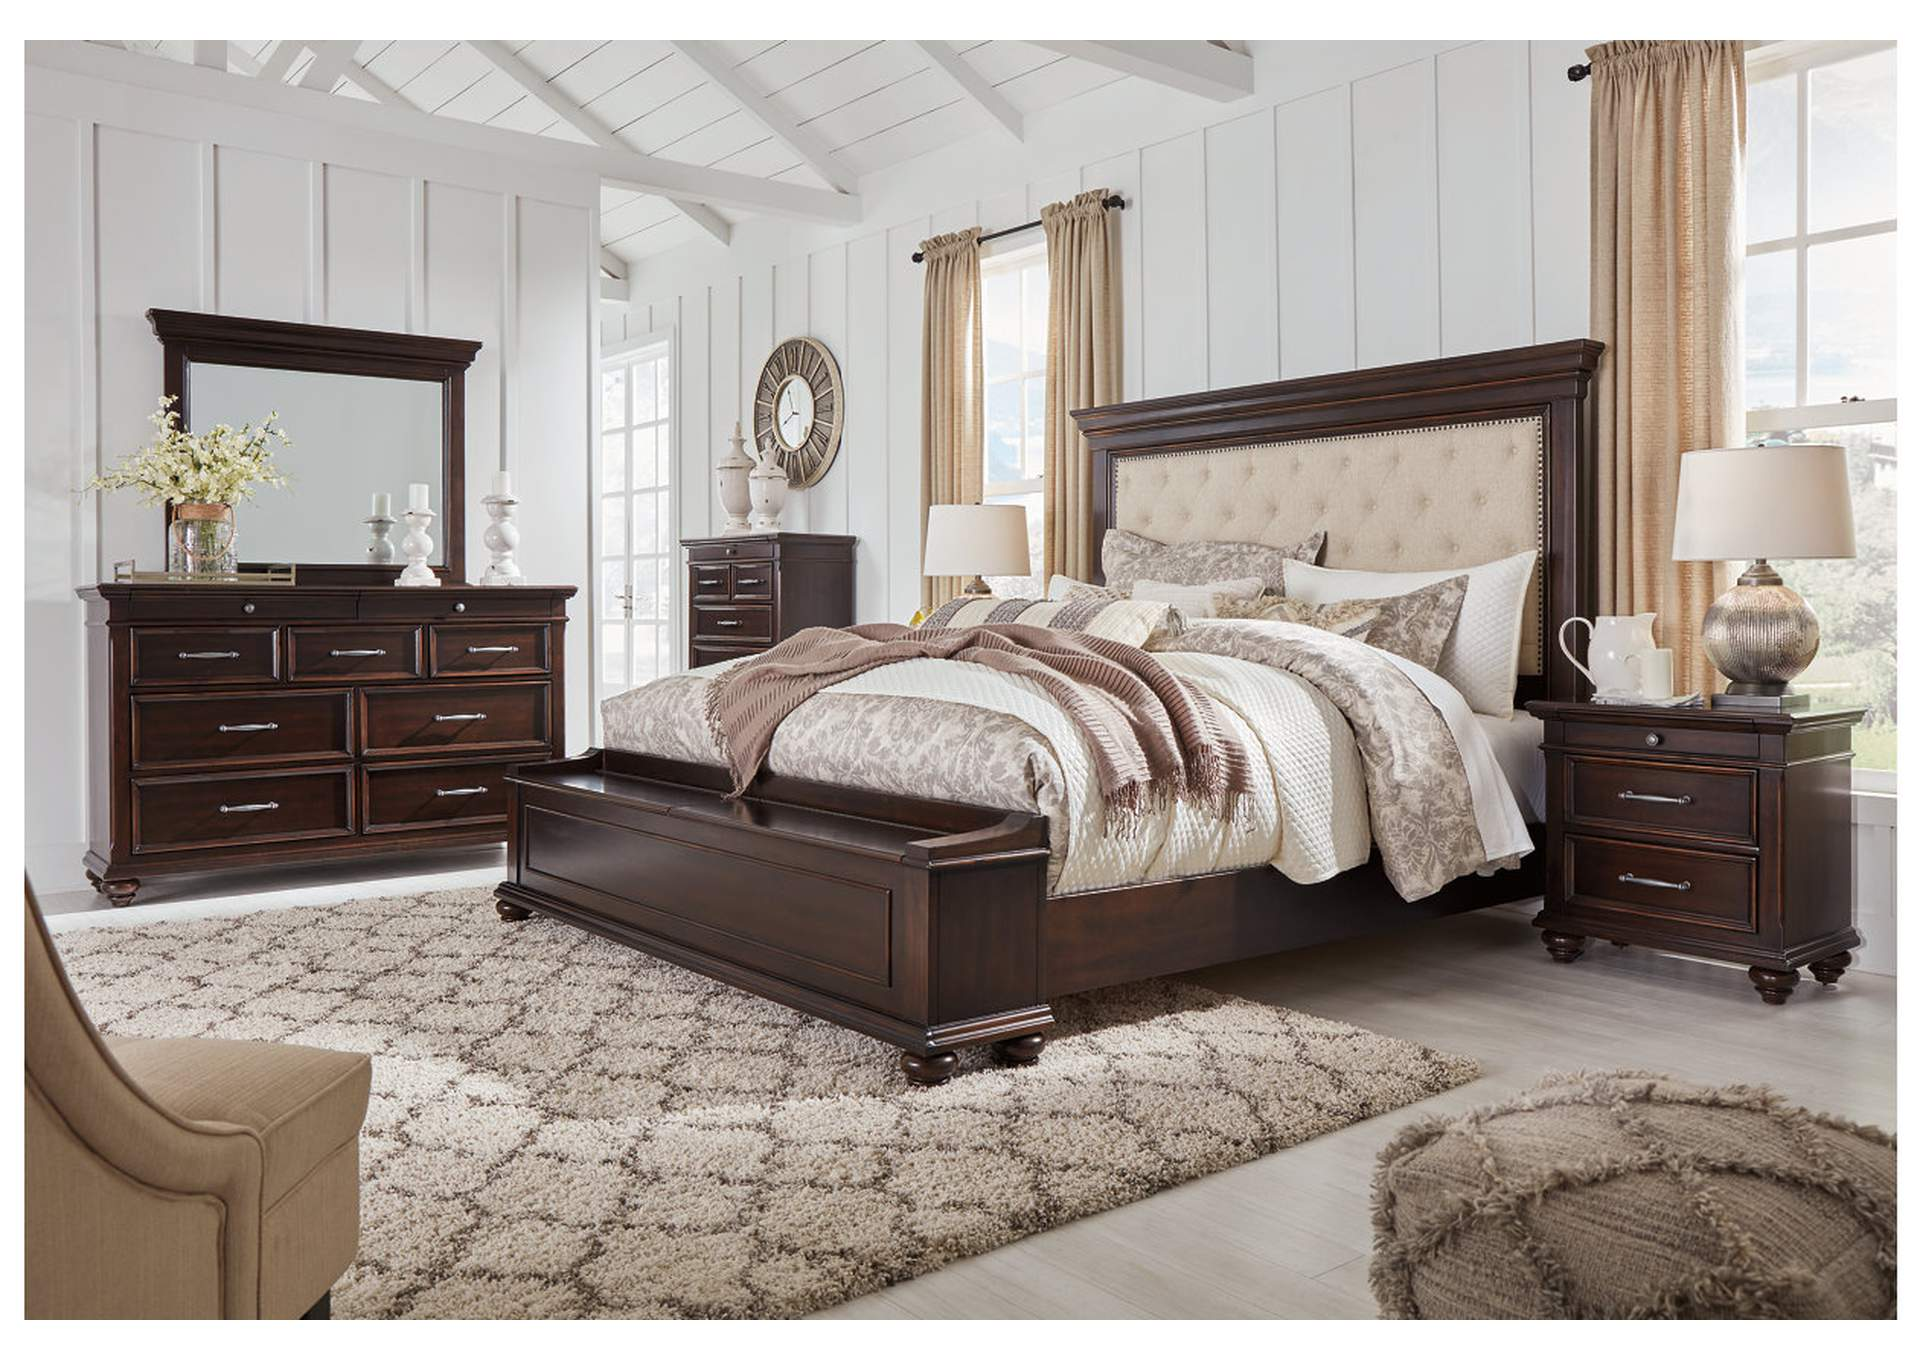 Brynhurst Brown Queen Upholstered Storage Bed Dresser w/Mirror,Signature Design By Ashley